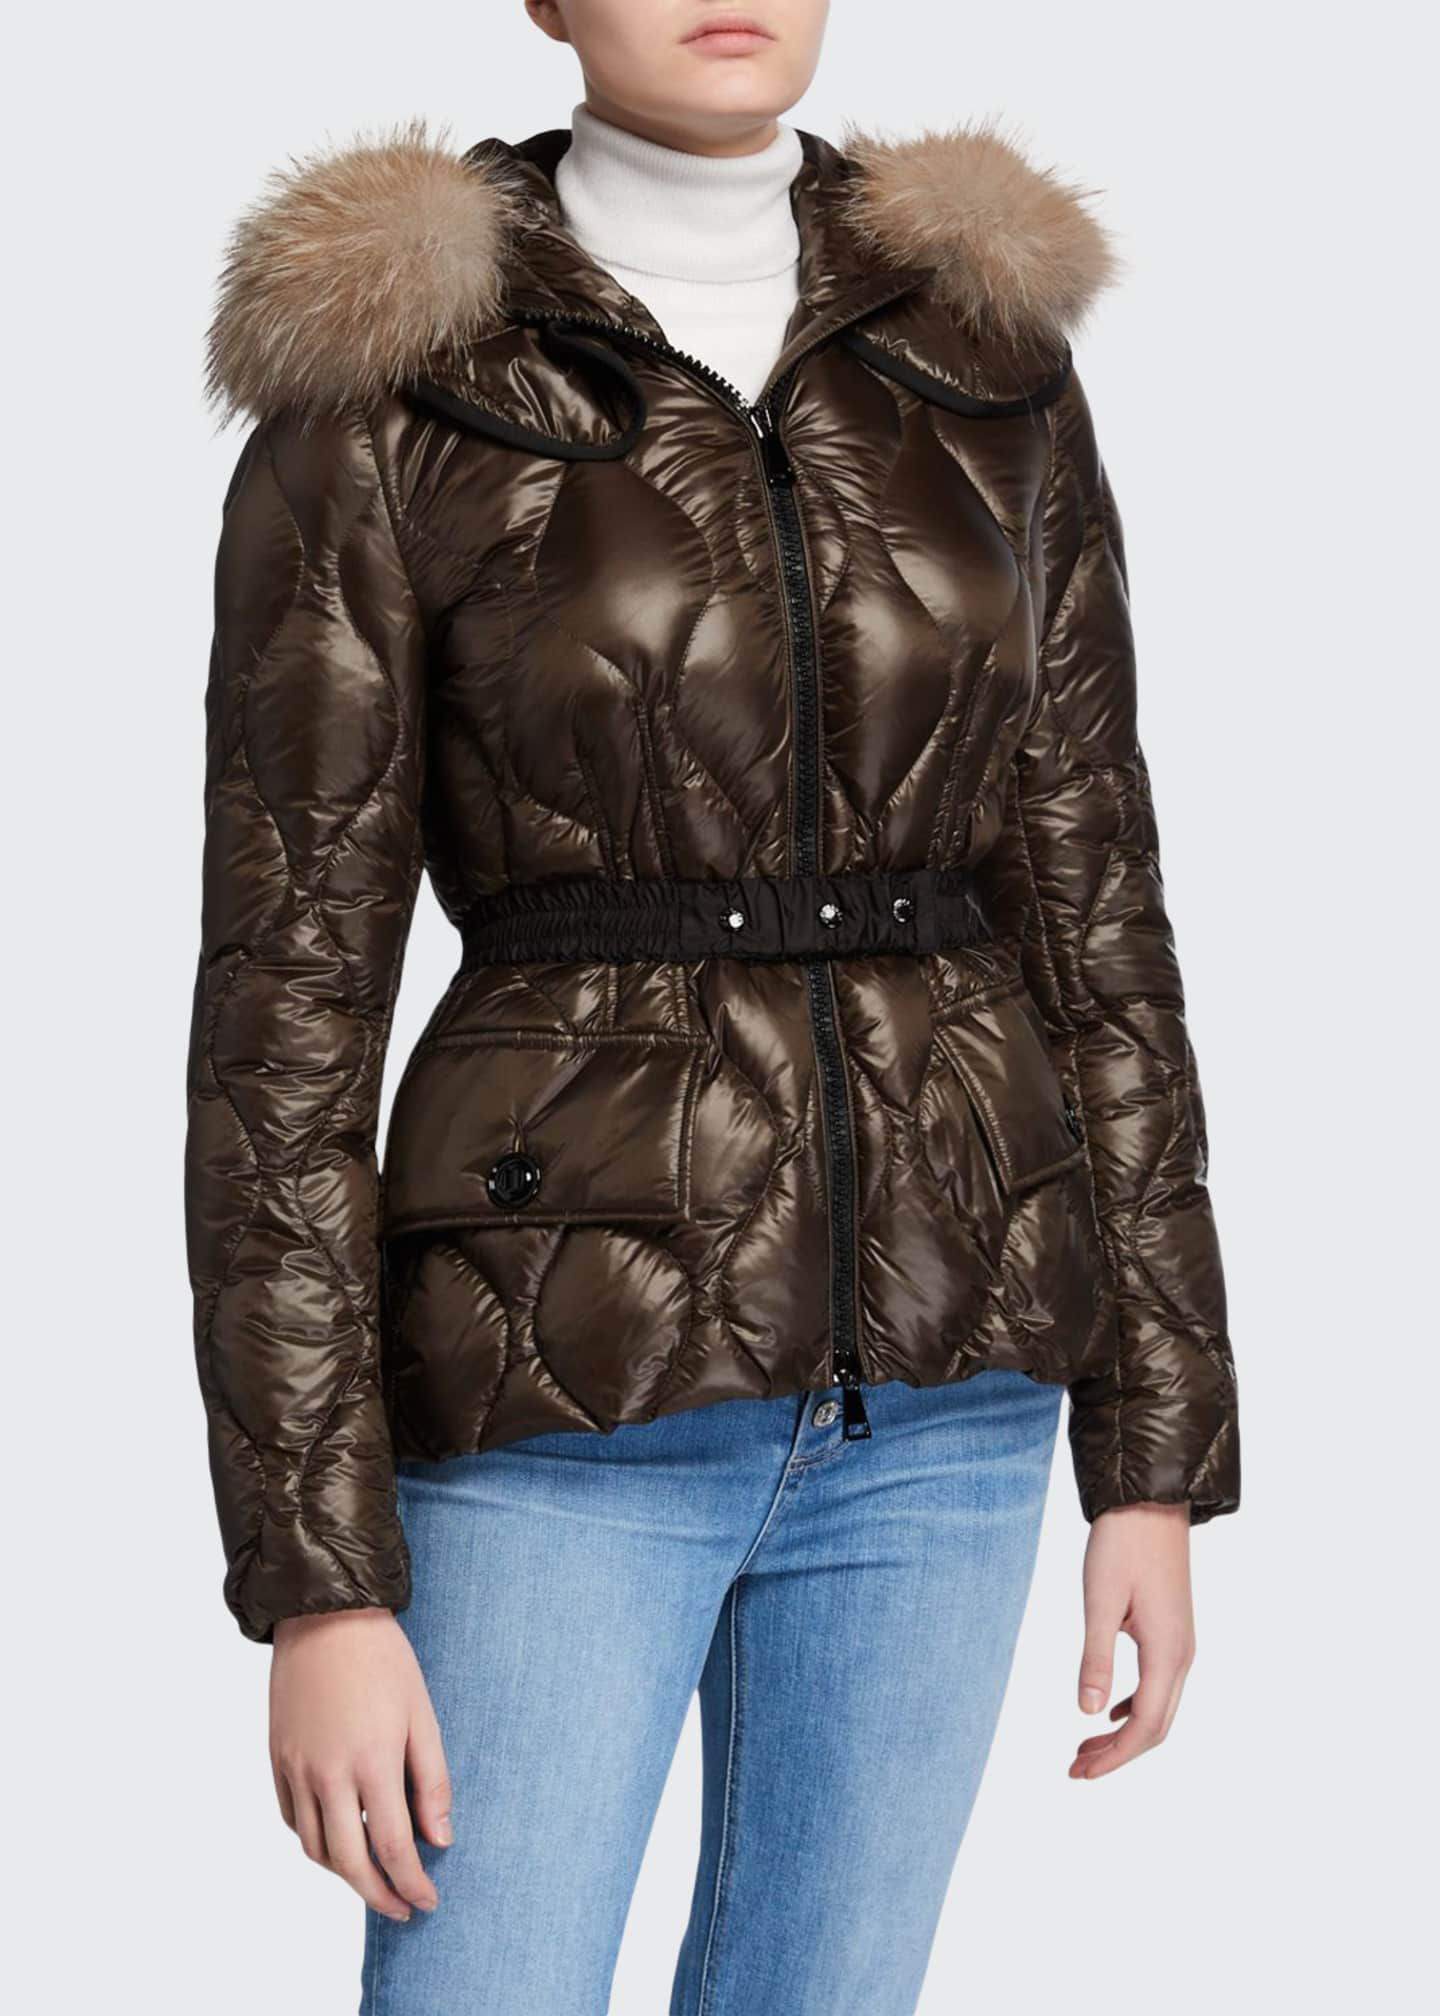 Moncler Cauvery Belted Diamond-Puffer Coat w/ Fur-Trim Hood